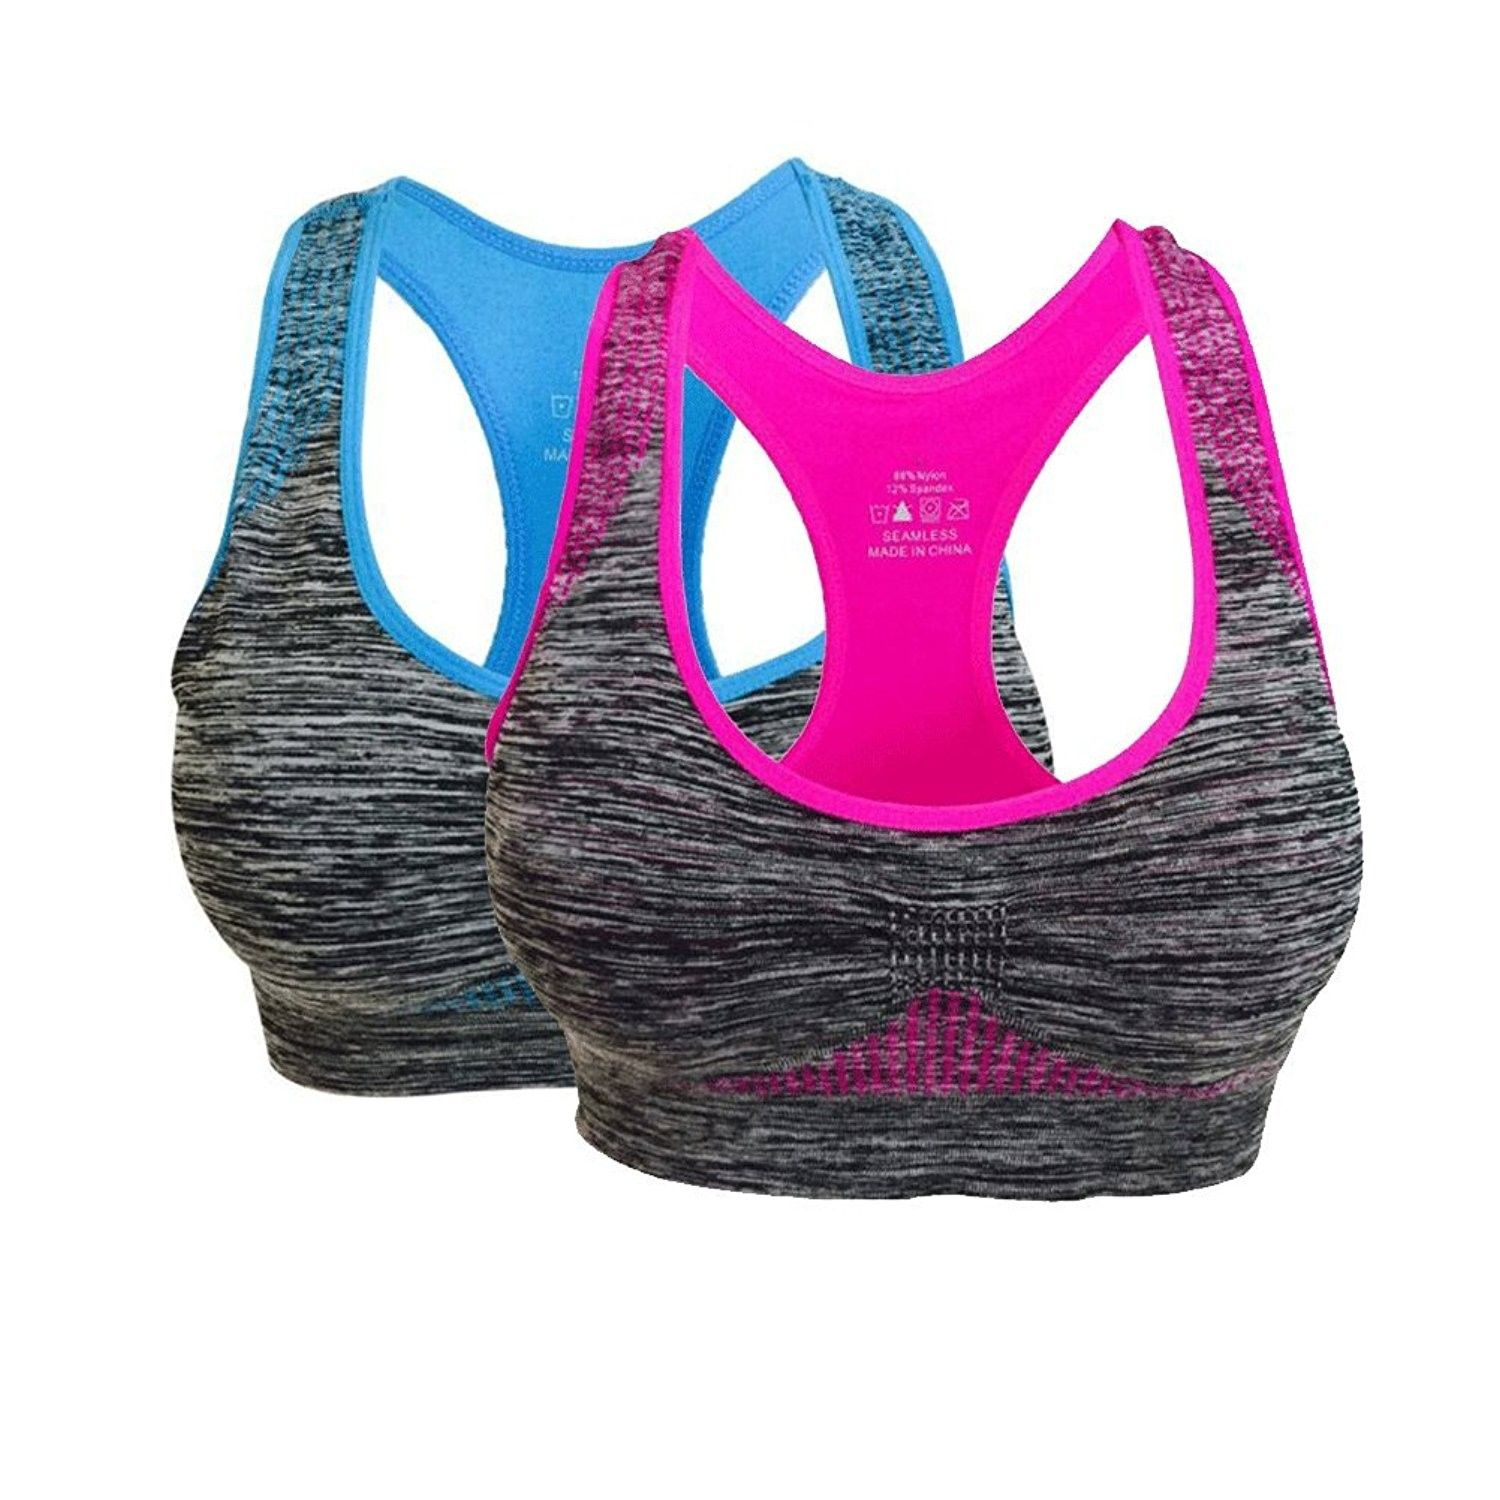 Women's Removable Padded Seamless Sports Bras Pocket High